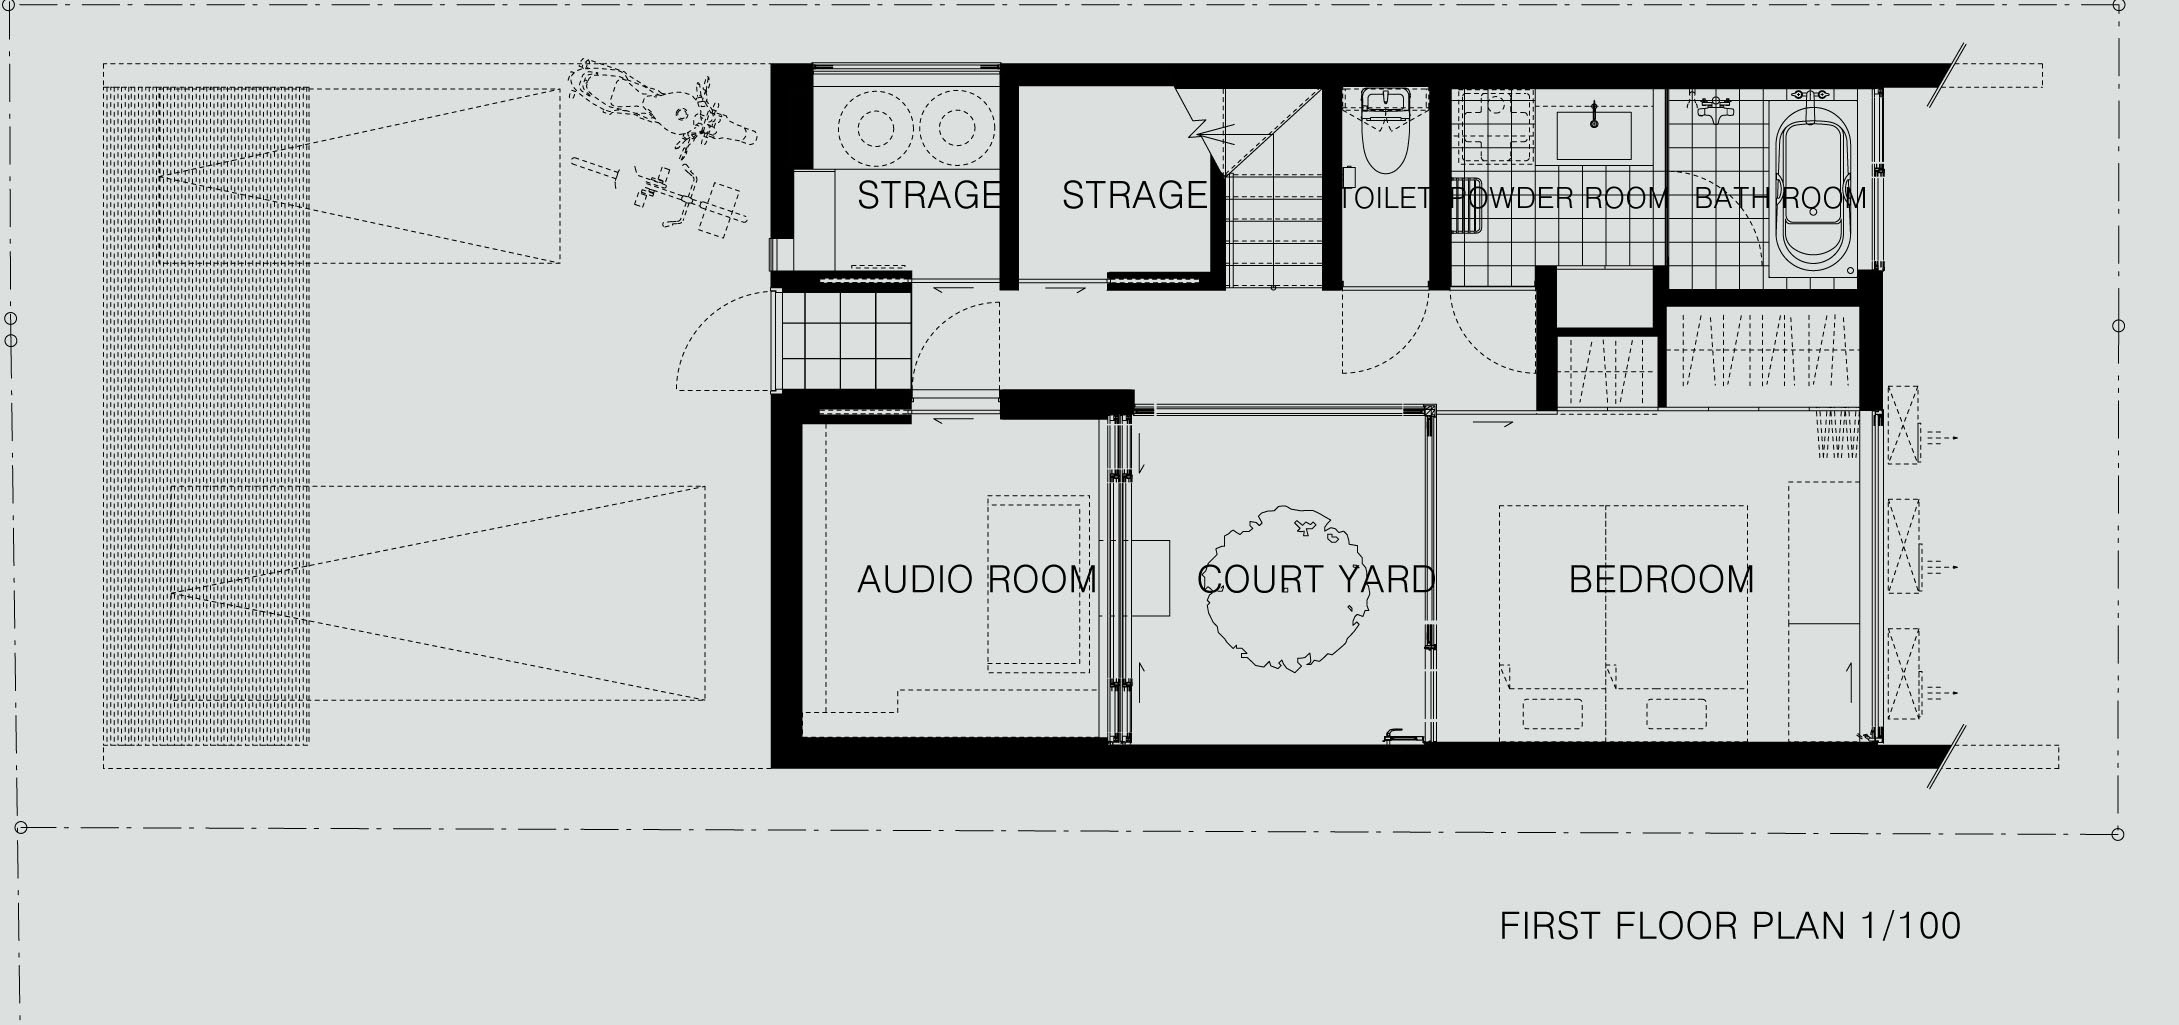 First Floor Plan Lift House 24 Interior Design Ideas And Architecture Designs amp On